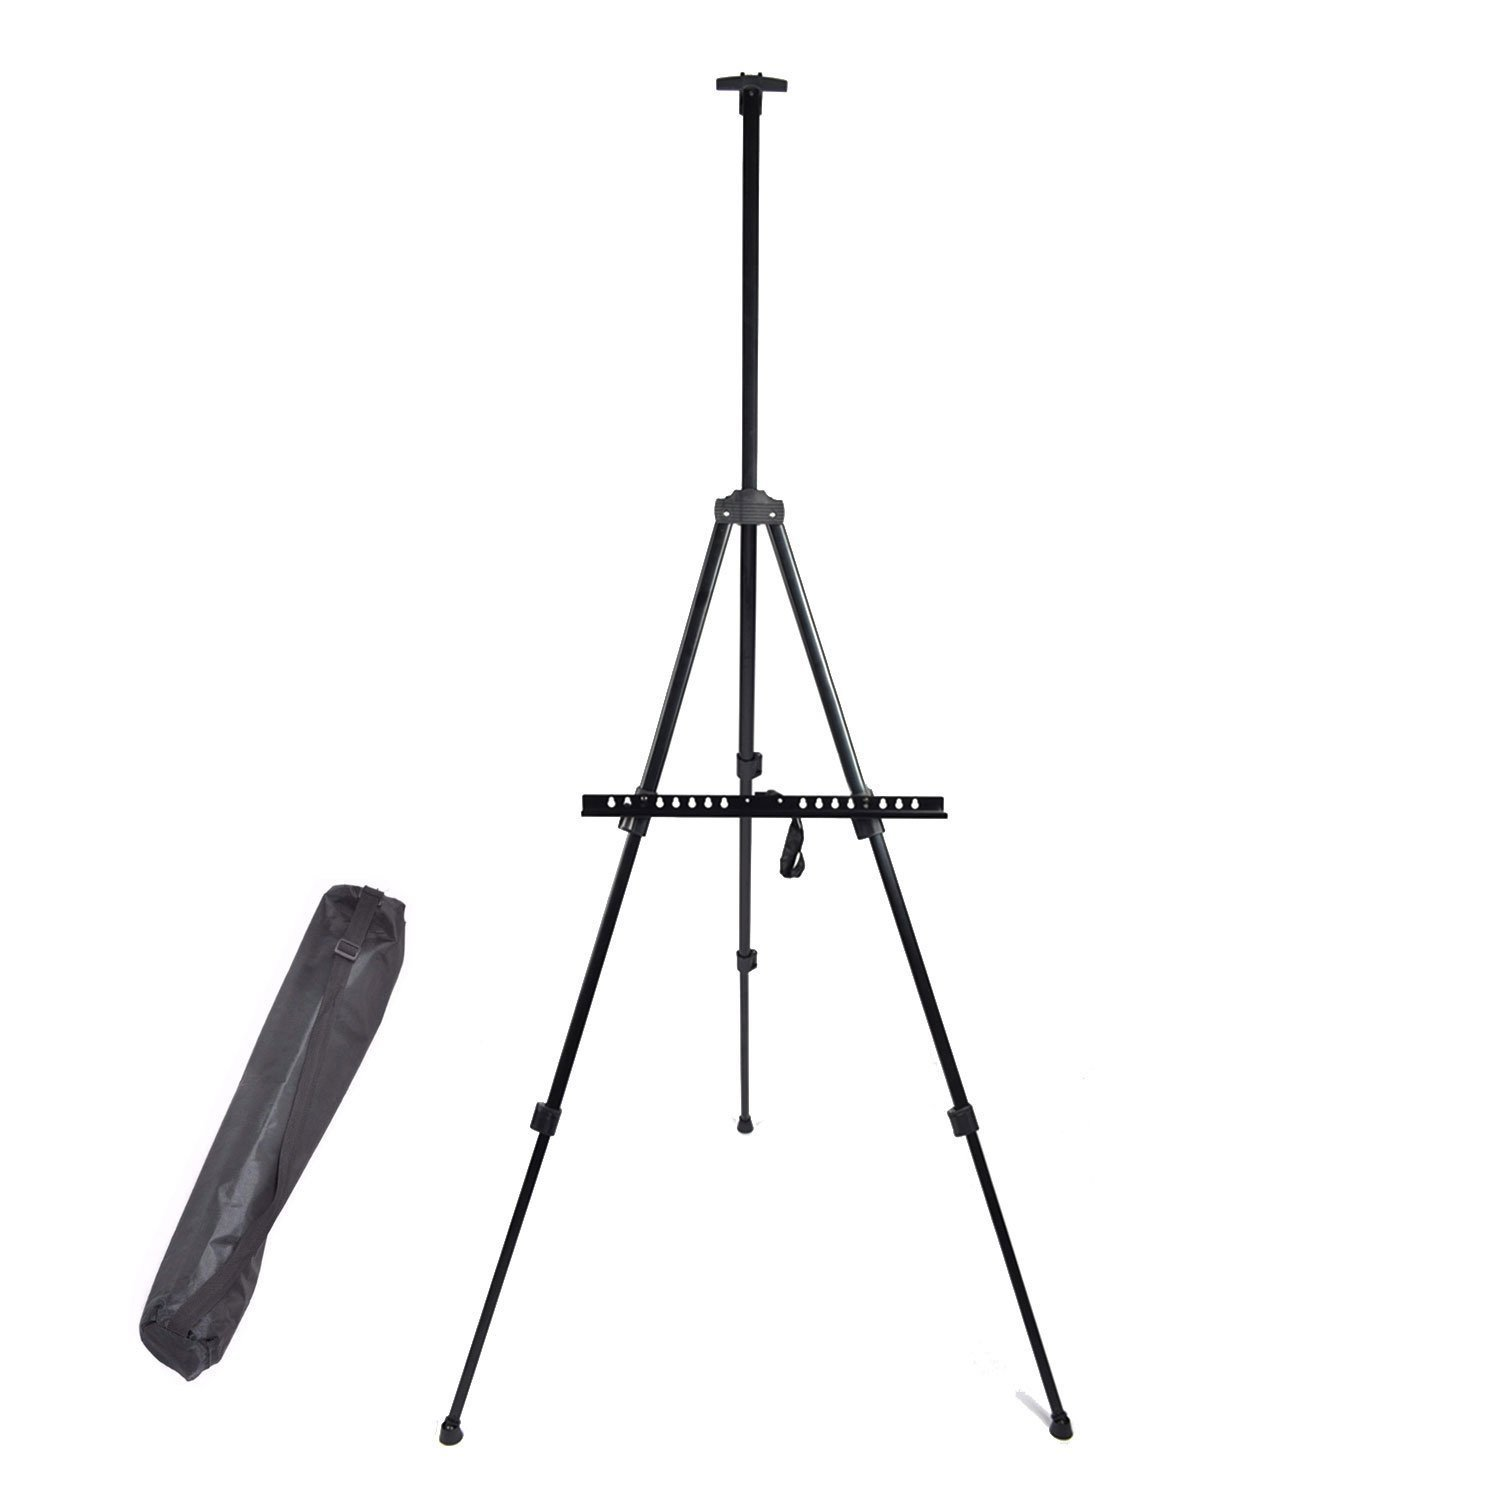 Dulcii Display Easel Stand, Portable Iron Metal Triangular Artist Easel Tripod Adjustable Display Stand for Poster Displaying Drawing and Paint, with Storage Bag